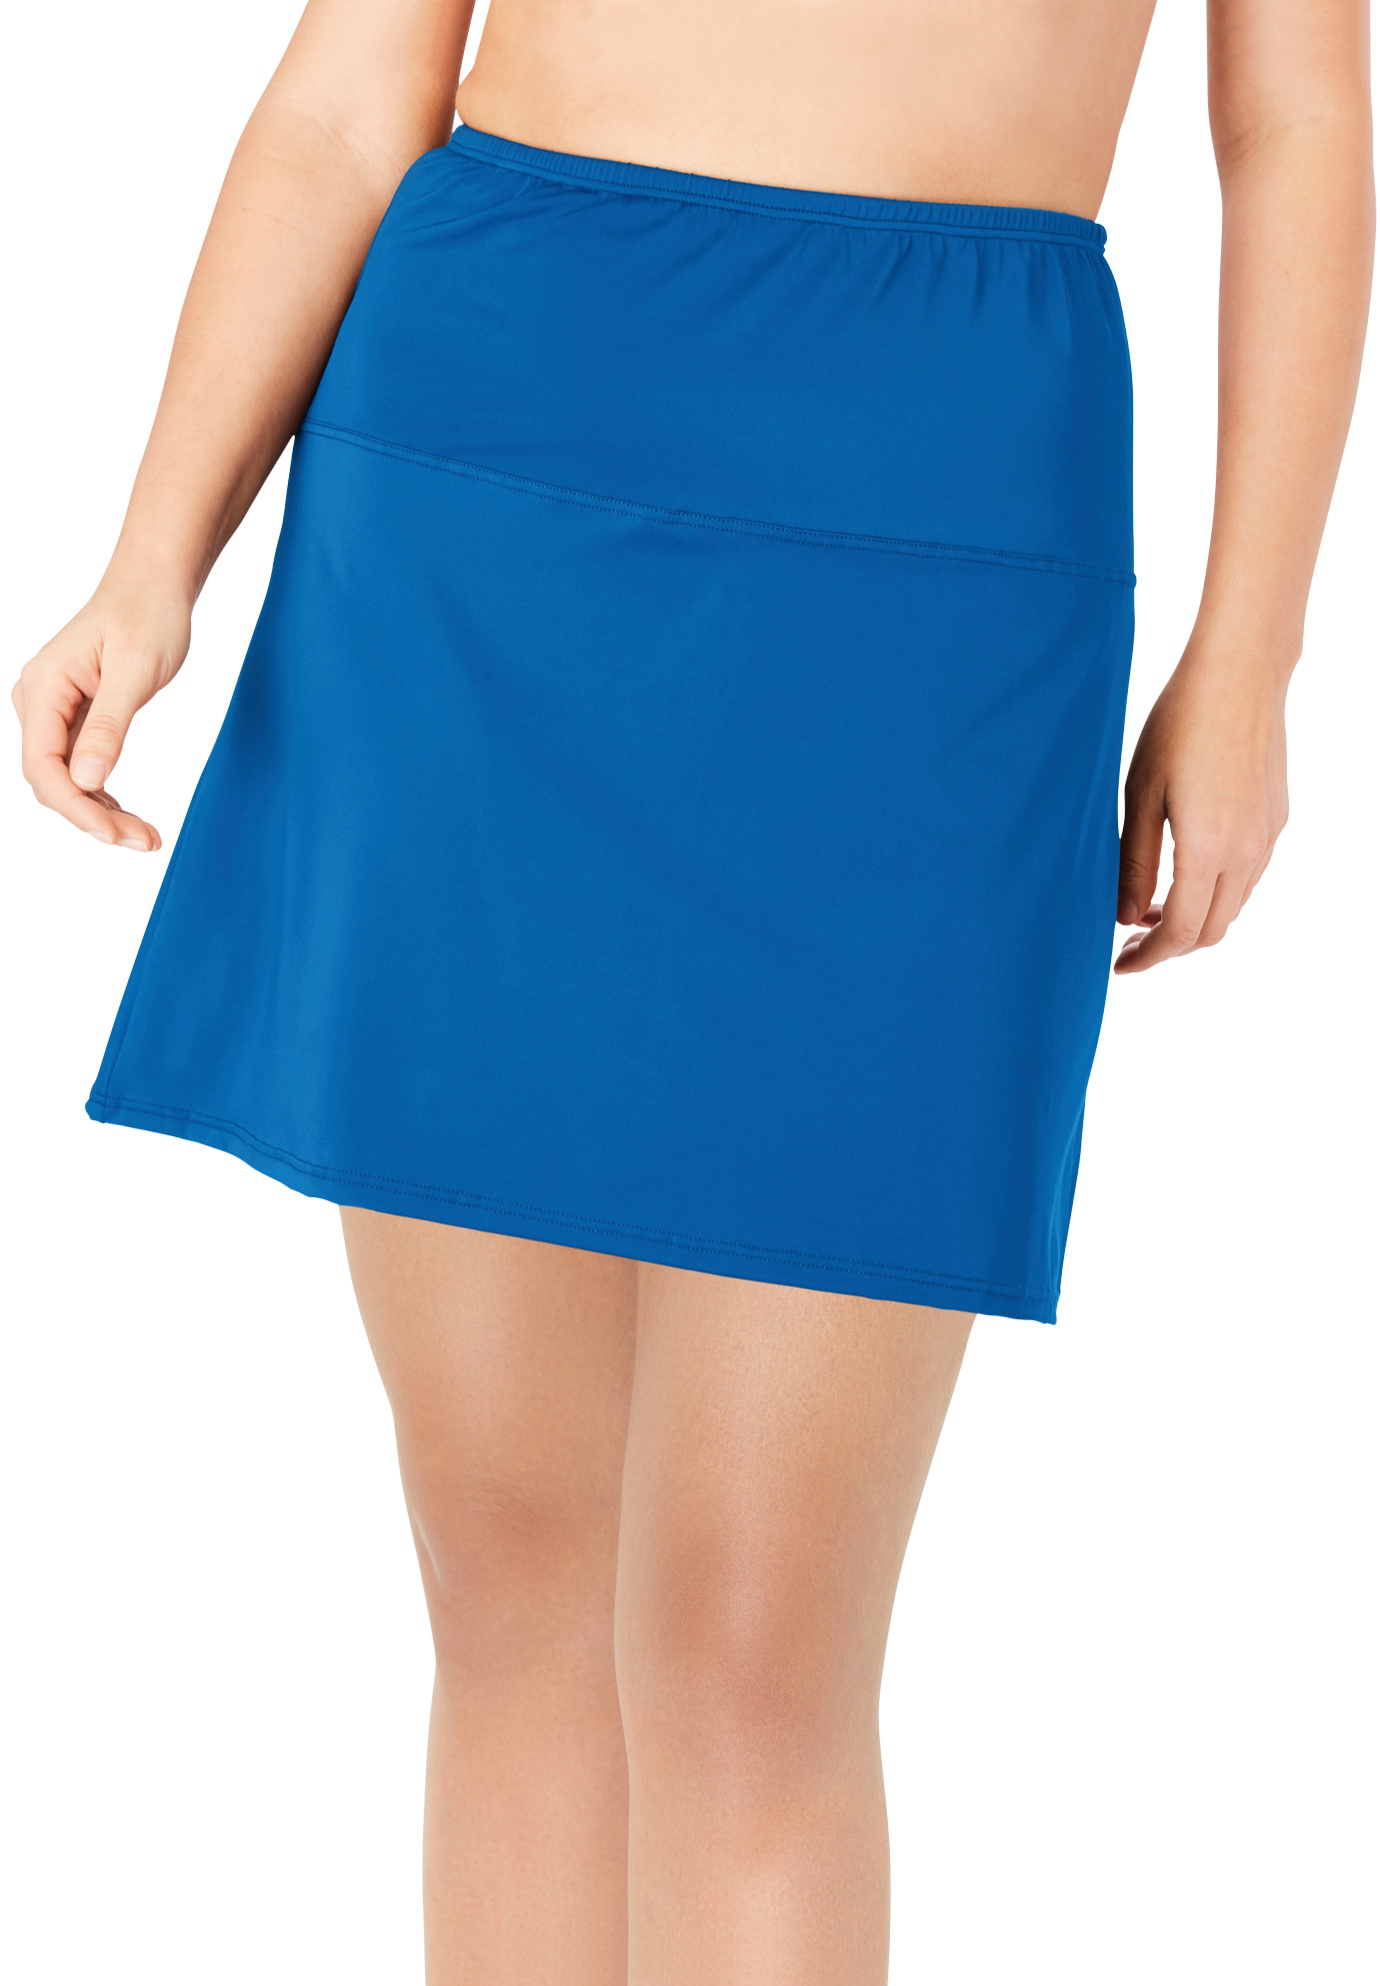 Plus Size Women's High-Waisted Swim Skirt with Built-In Brief by Swim 365 in Dream Blue